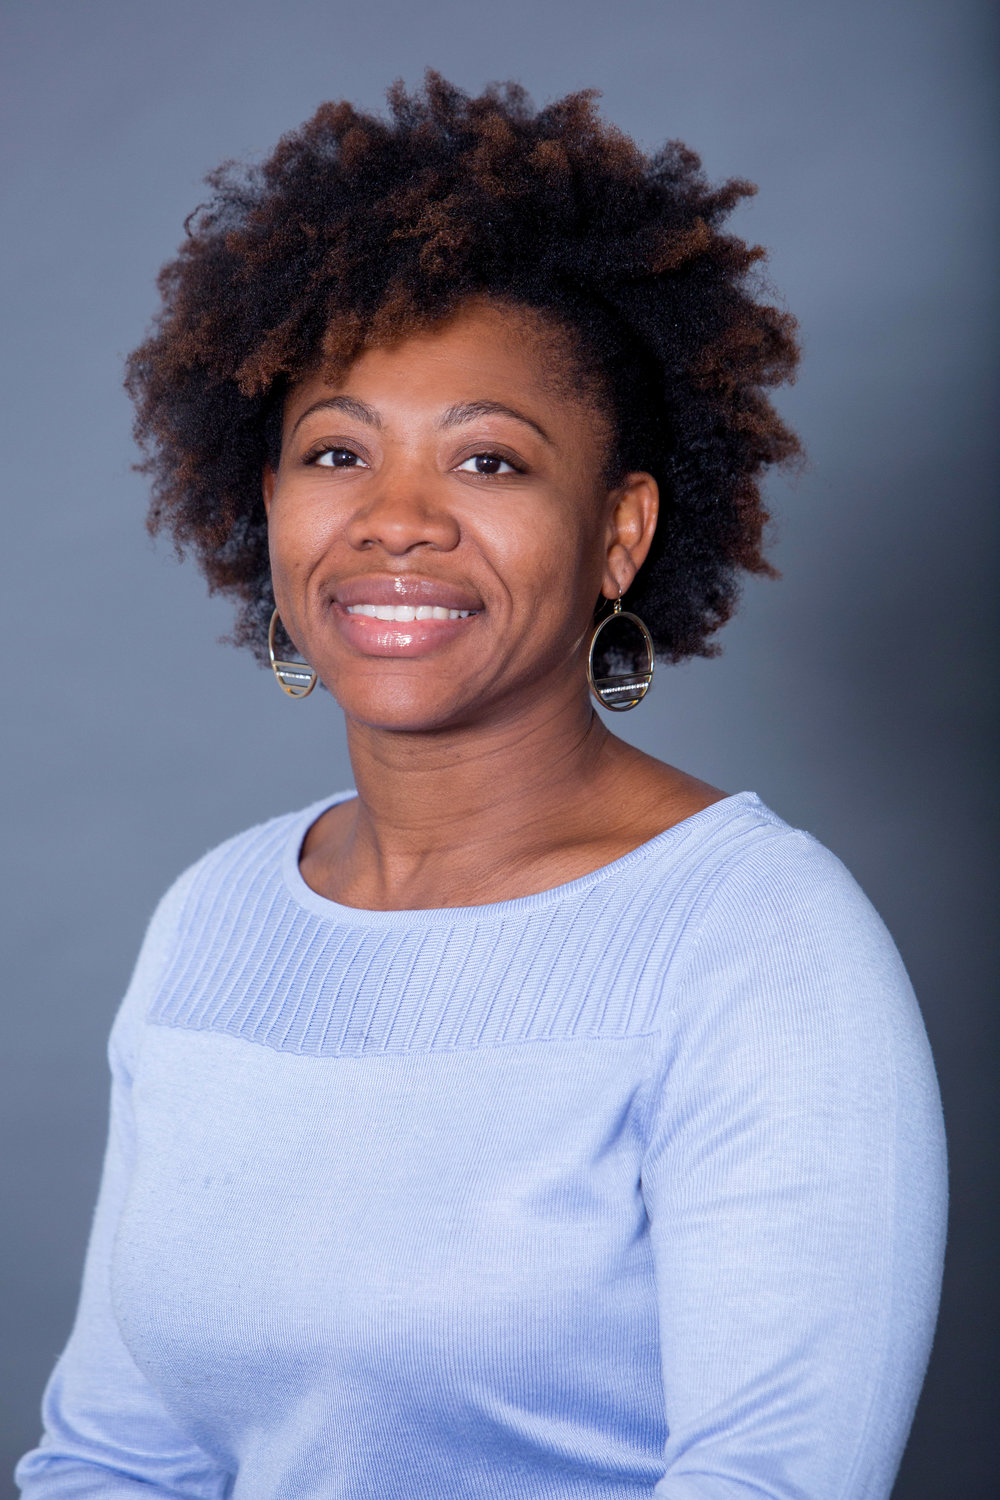 Samantha Francois, PhD is an Assistant Professor